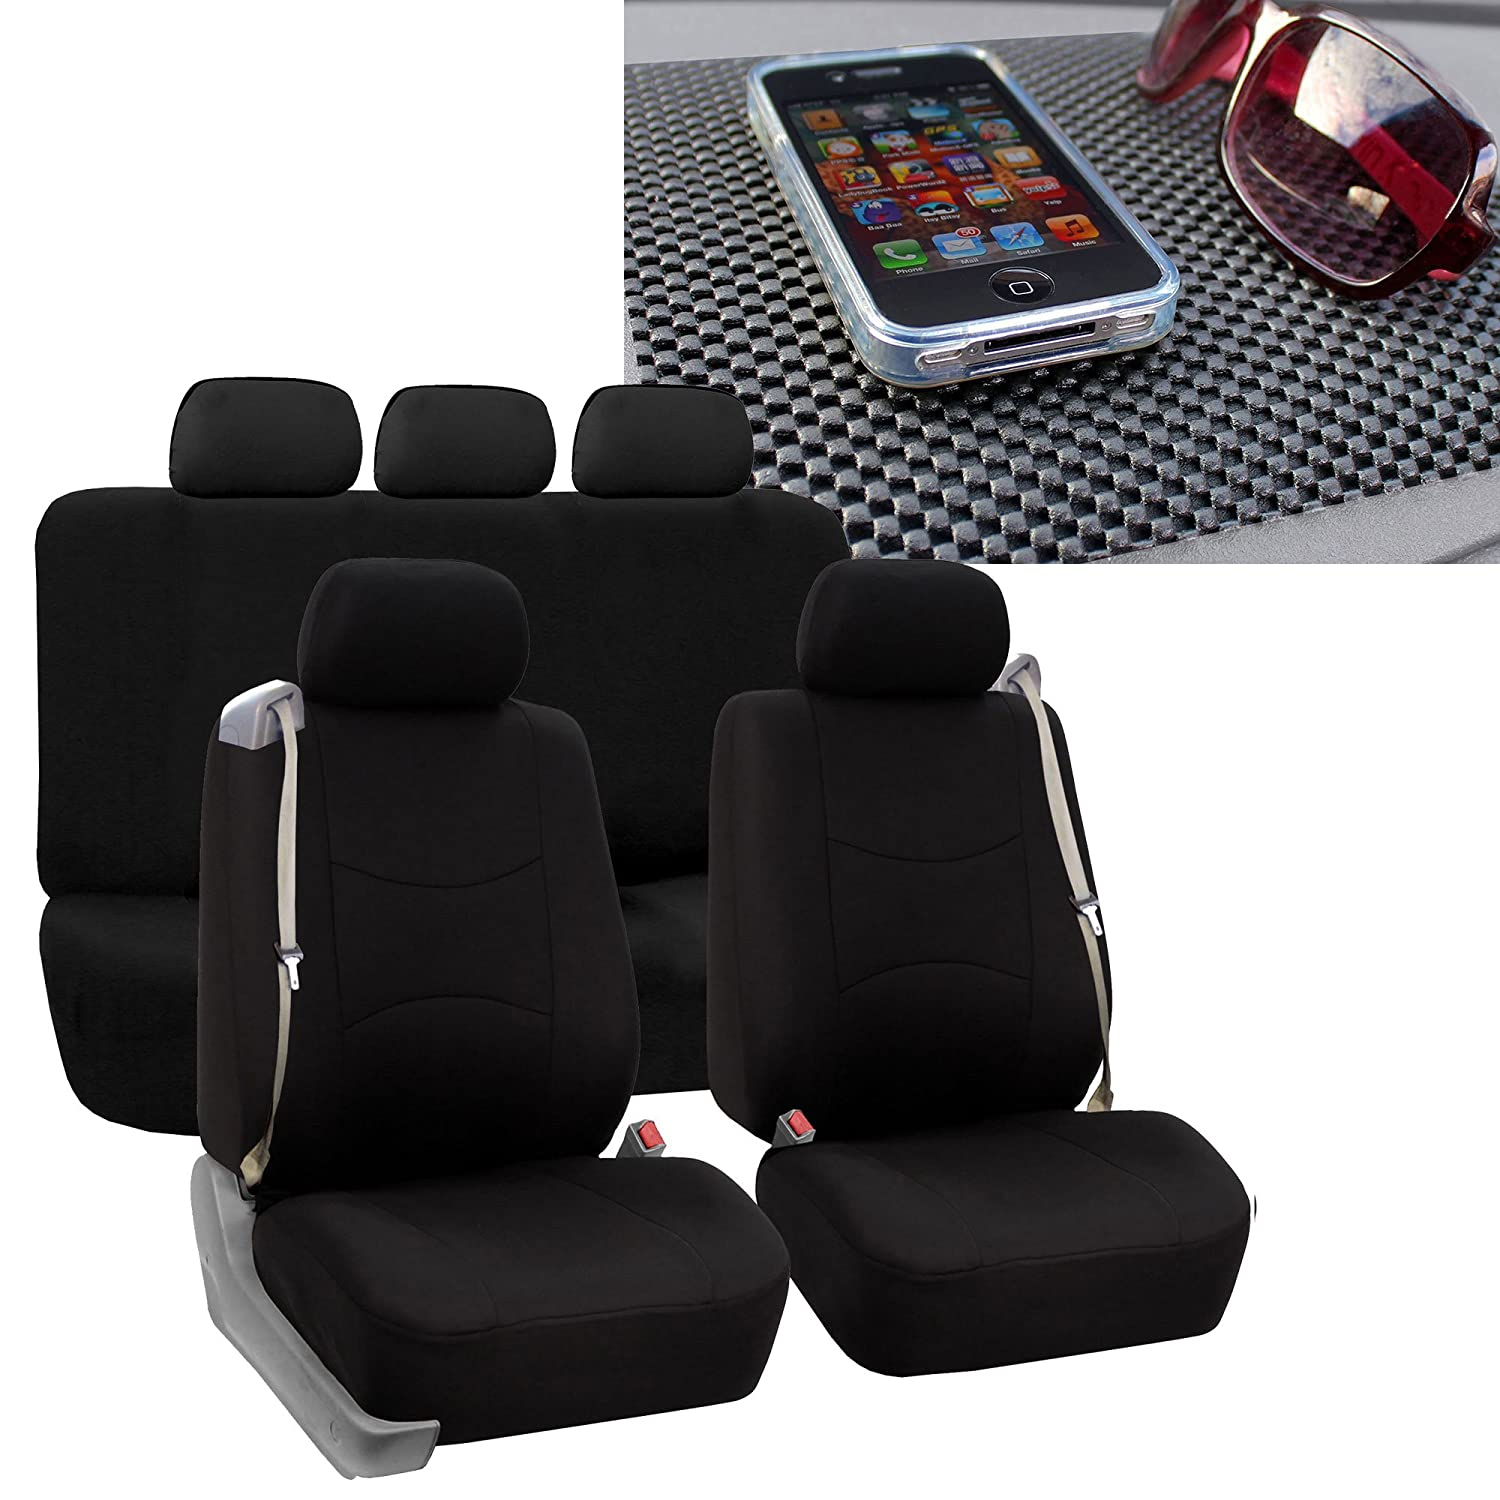 FH GROUP FH-FB351115 All Purpose Flat Cloth Built-In Seat Belt Seat Covers Solid Black Color, Airbag compatible and Split Bench W. FH1002 Non-Slip Dash Pad- Fit Most Car, Truck, Suv, or Van